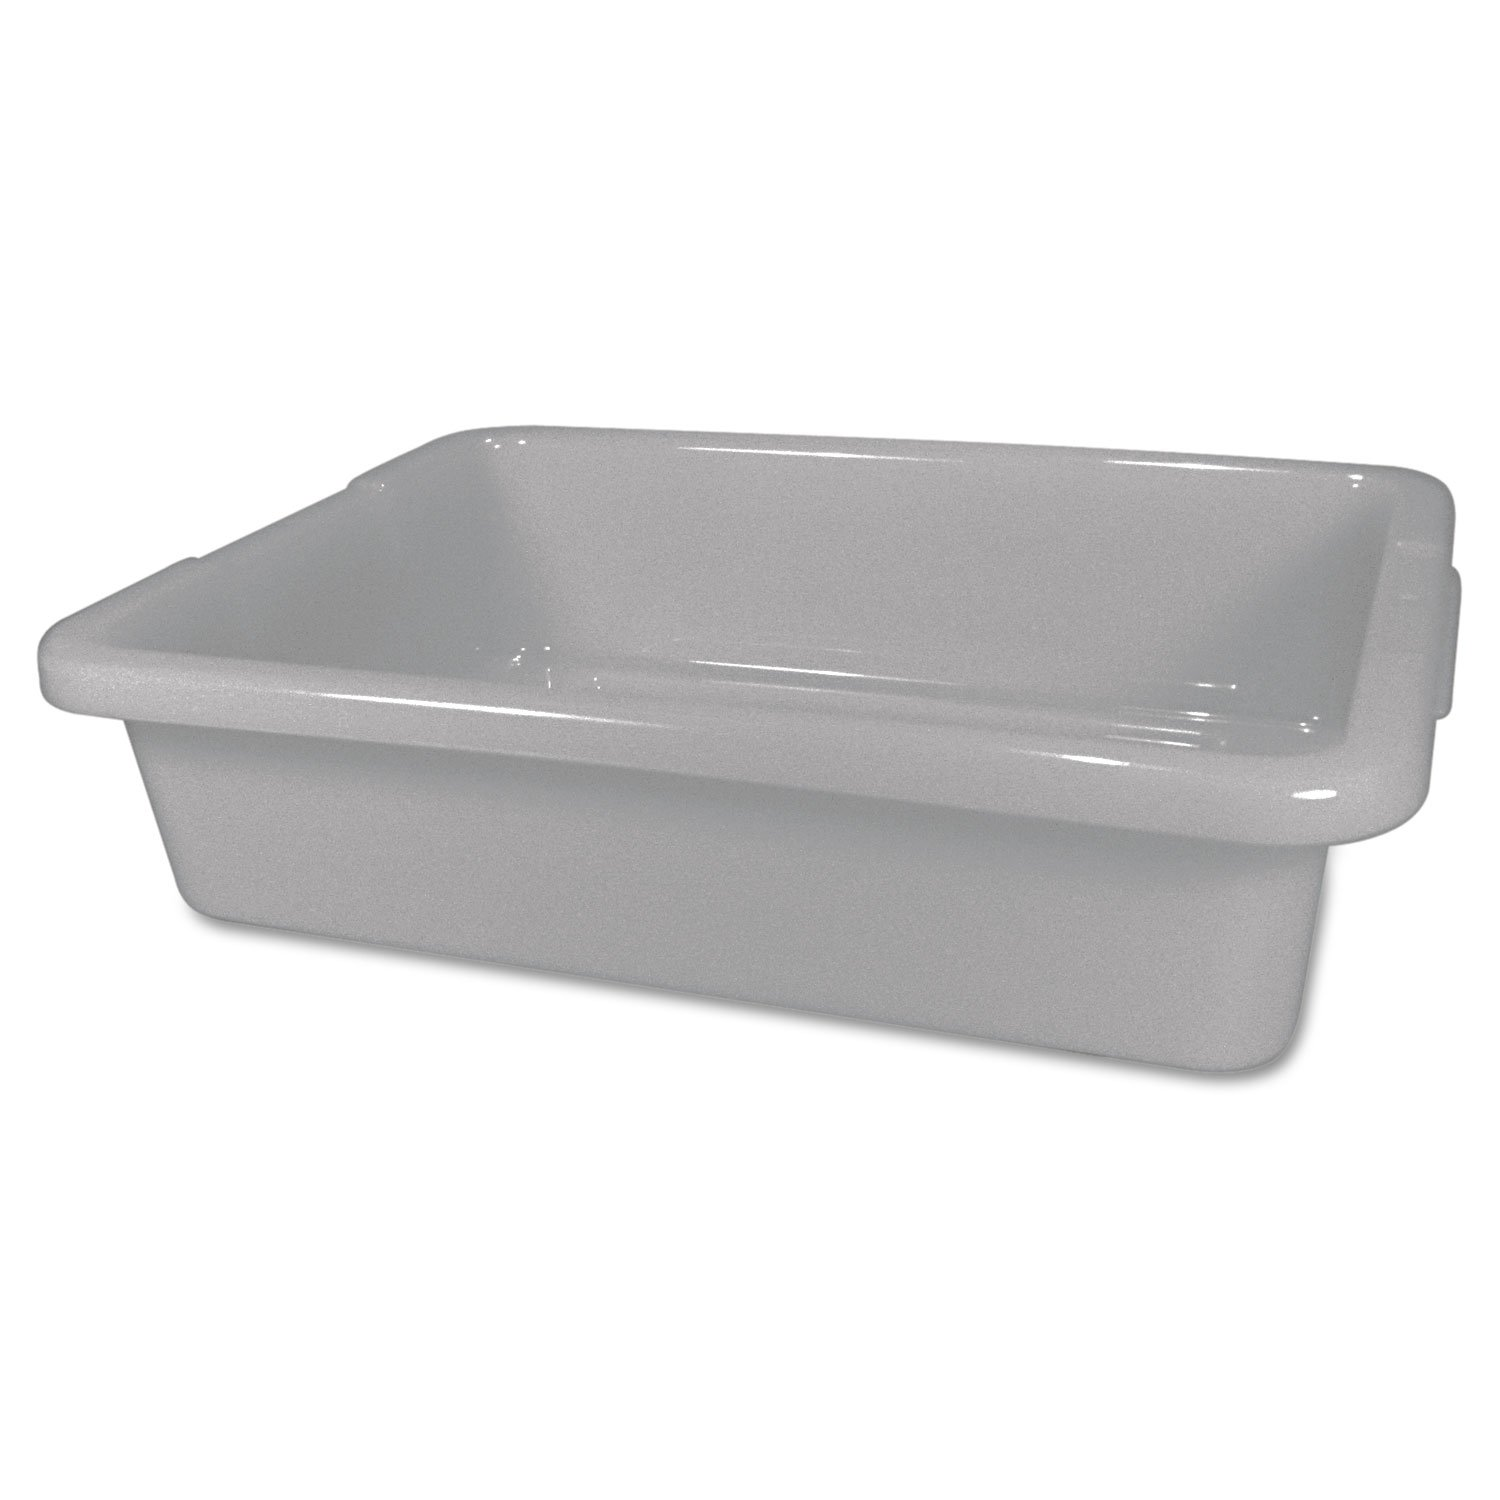 Rubbermaid Commercial 3349 4-5/8-Gallon Capacity, 20'' Length x 15'' Width x 5'' Height, Gray Color, High-Density Polyethylene Bus and Utility Box